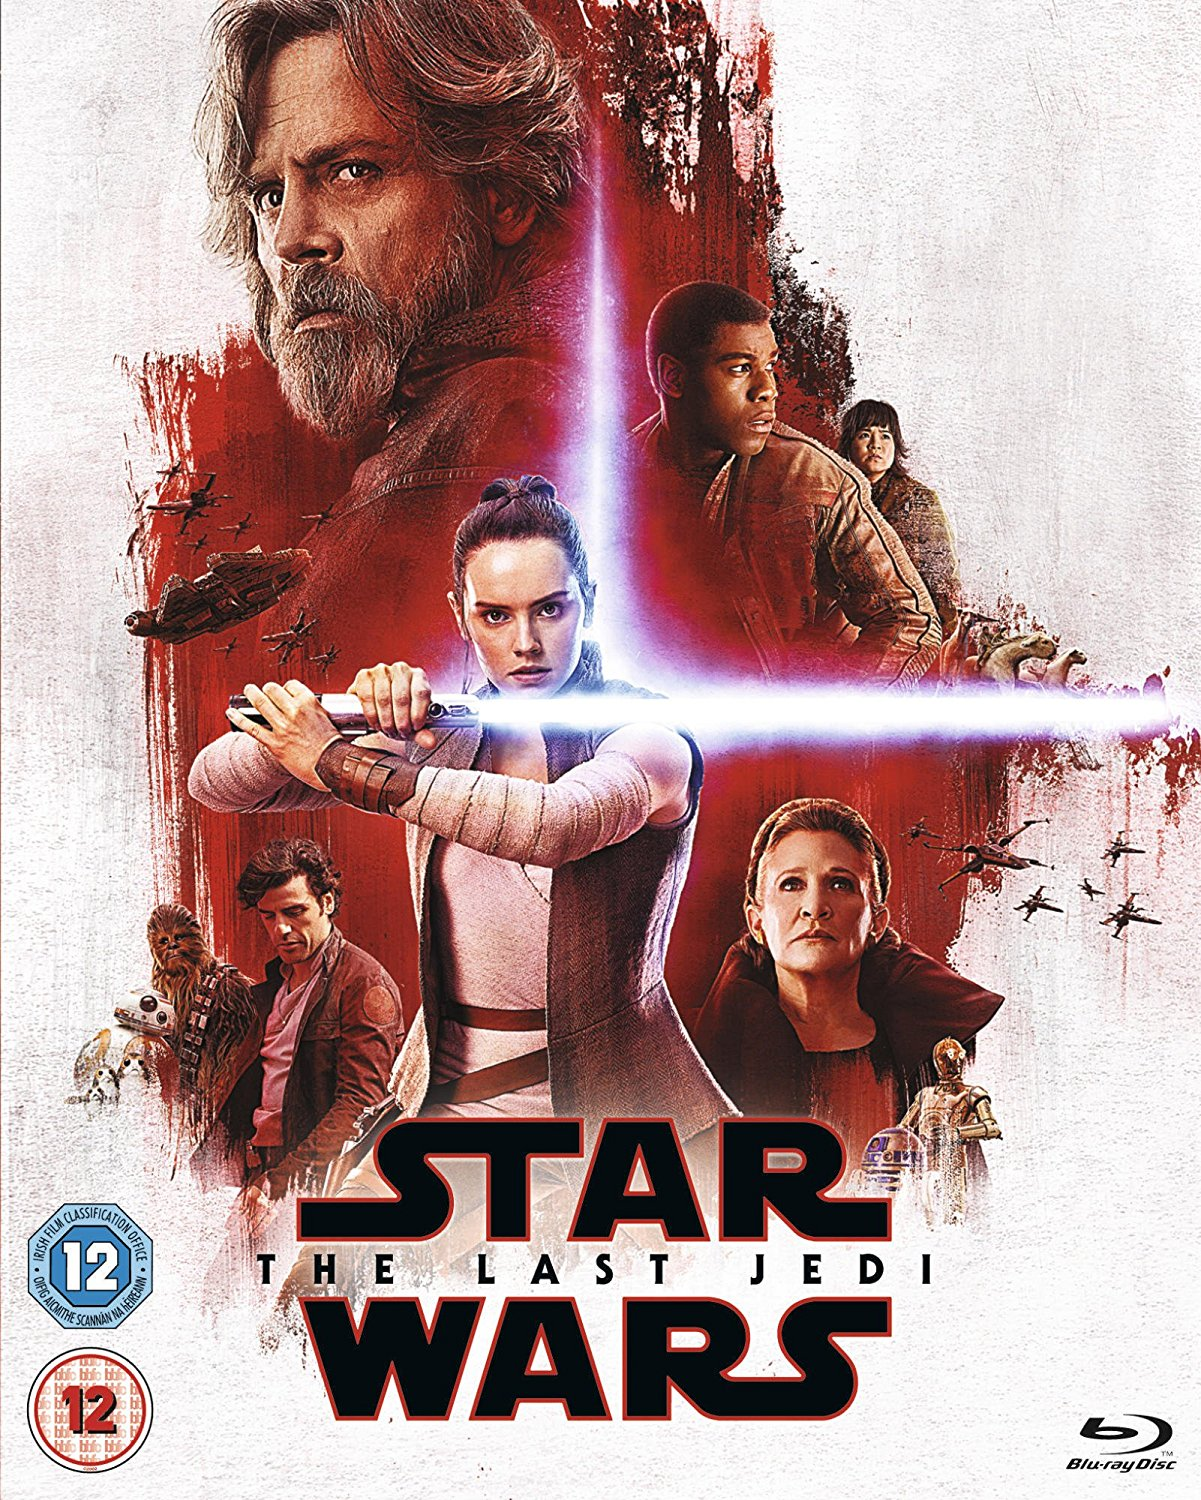 The Director And The Jedi film review: a behind the scenes look at Rian Johnson's Star Wars